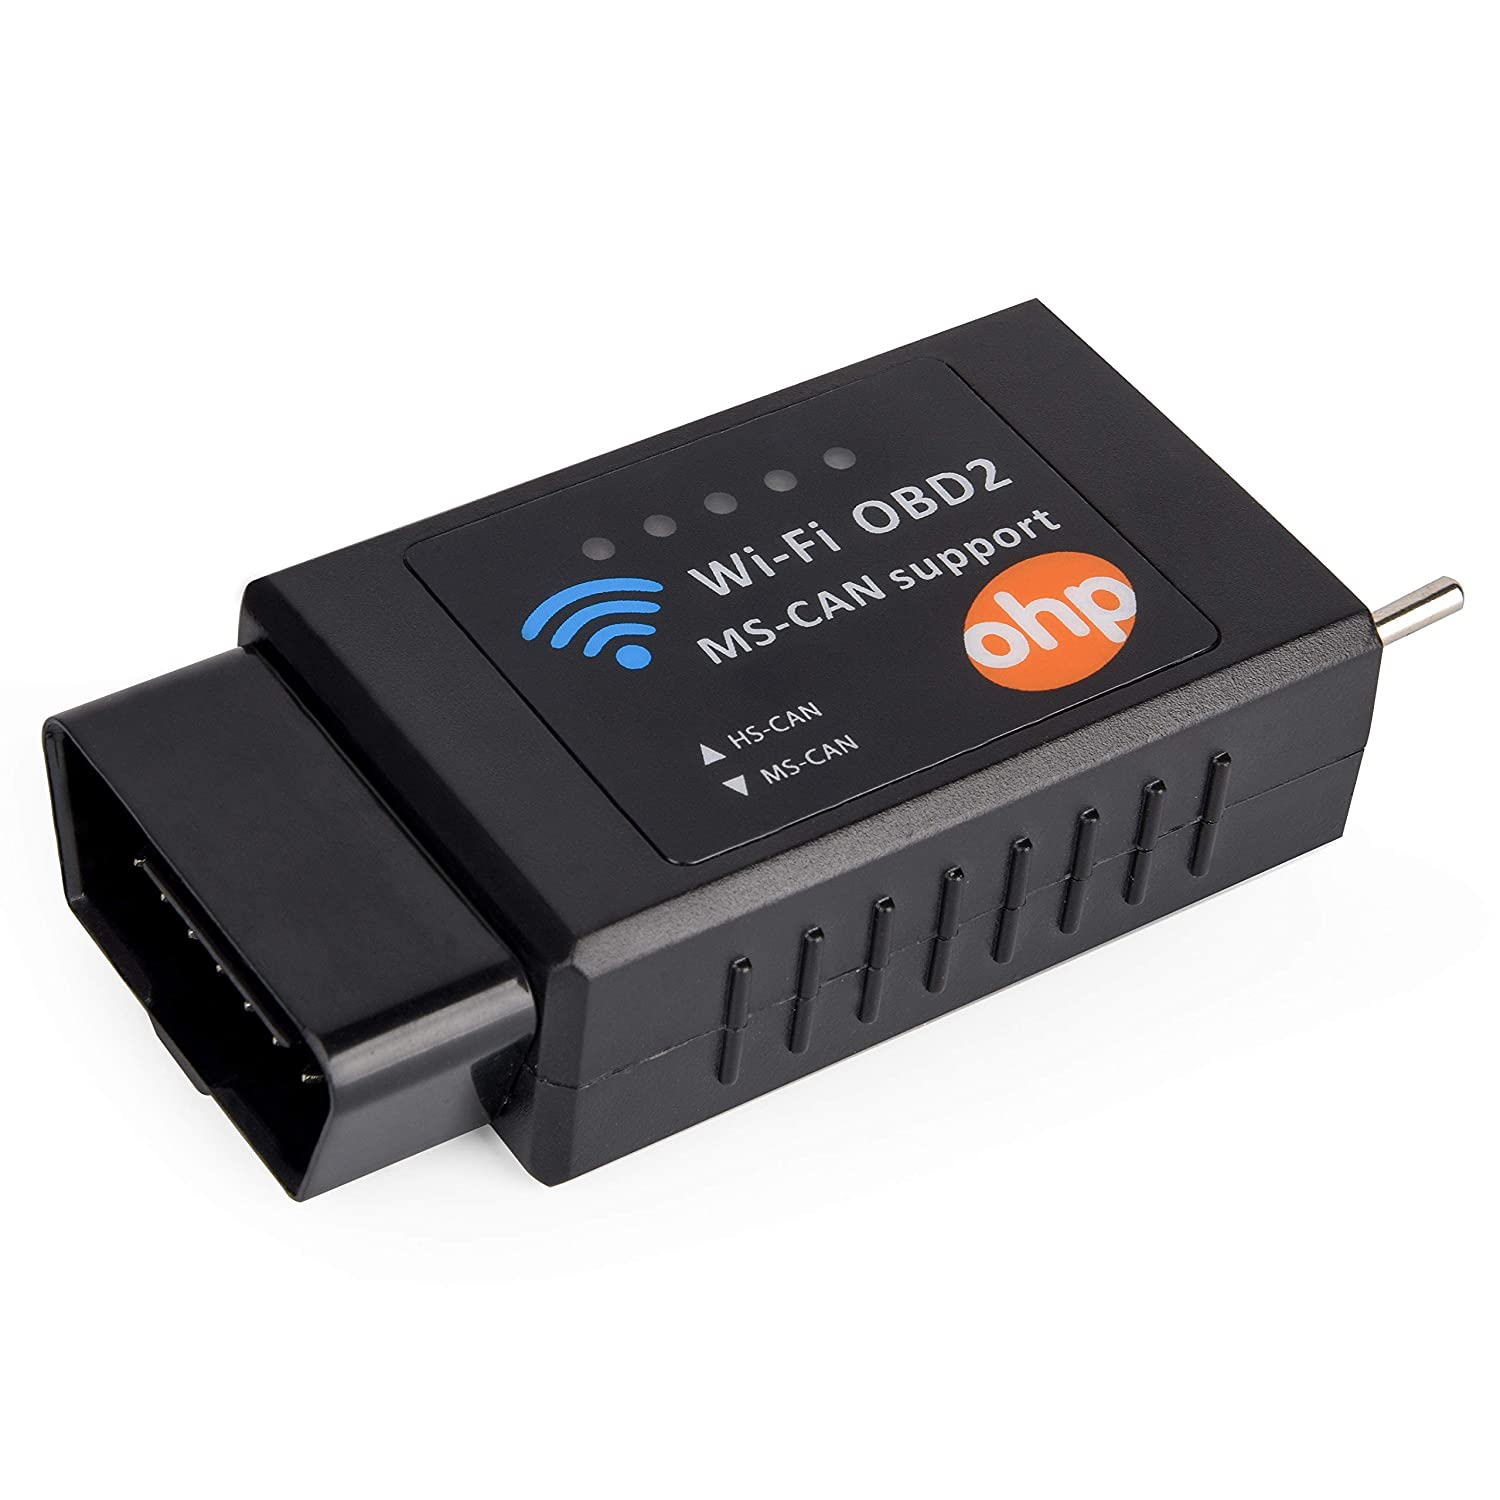 OHP WiFi ELM327 Forscan OBD2 Adapter with HS-CAN /& MS-CAN Switch for Ford DIY Diagnostics on iPhone and Ipad